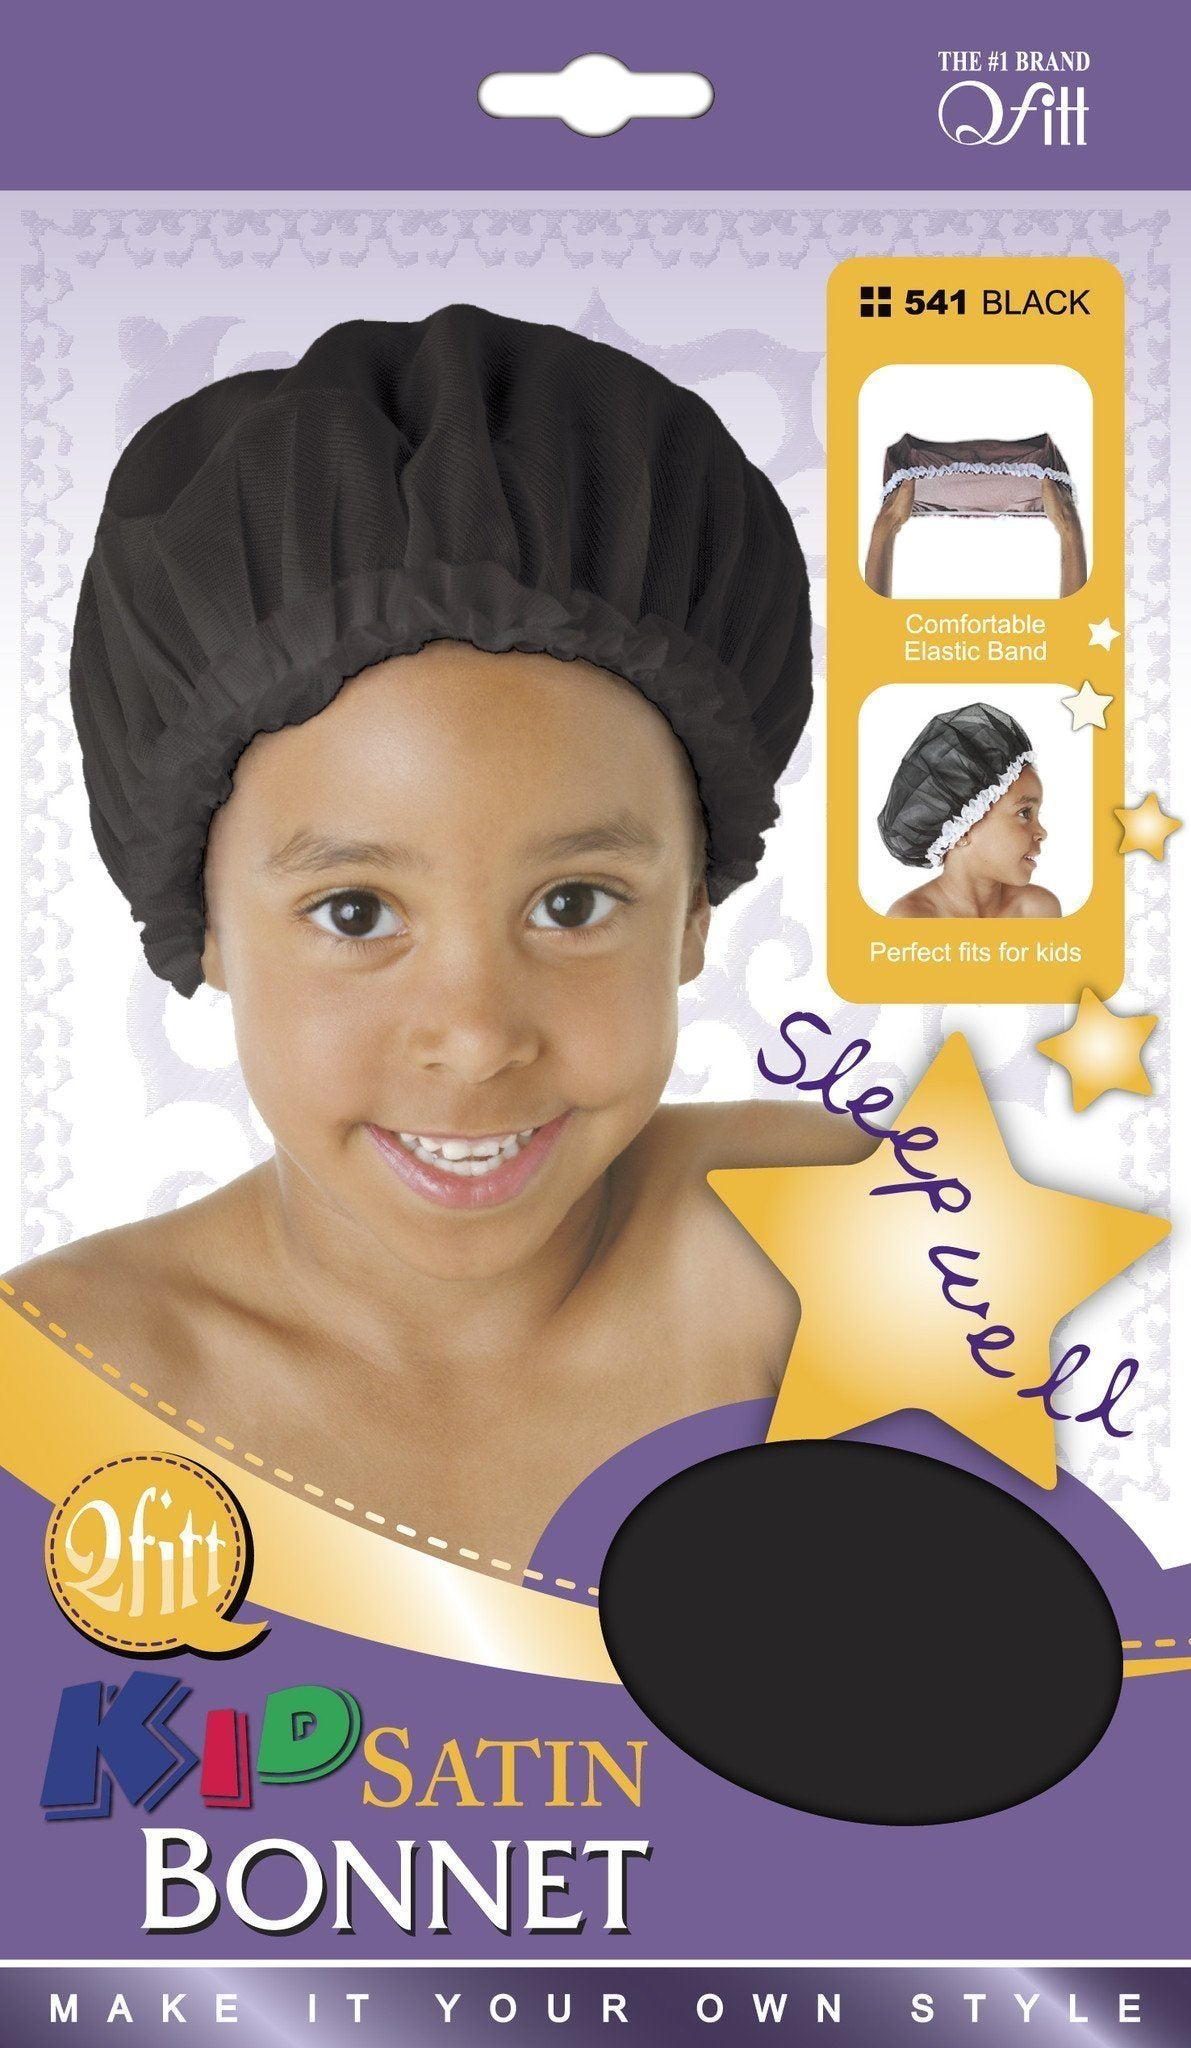 #541 Kid Satin Bonnet / Black (Dz)